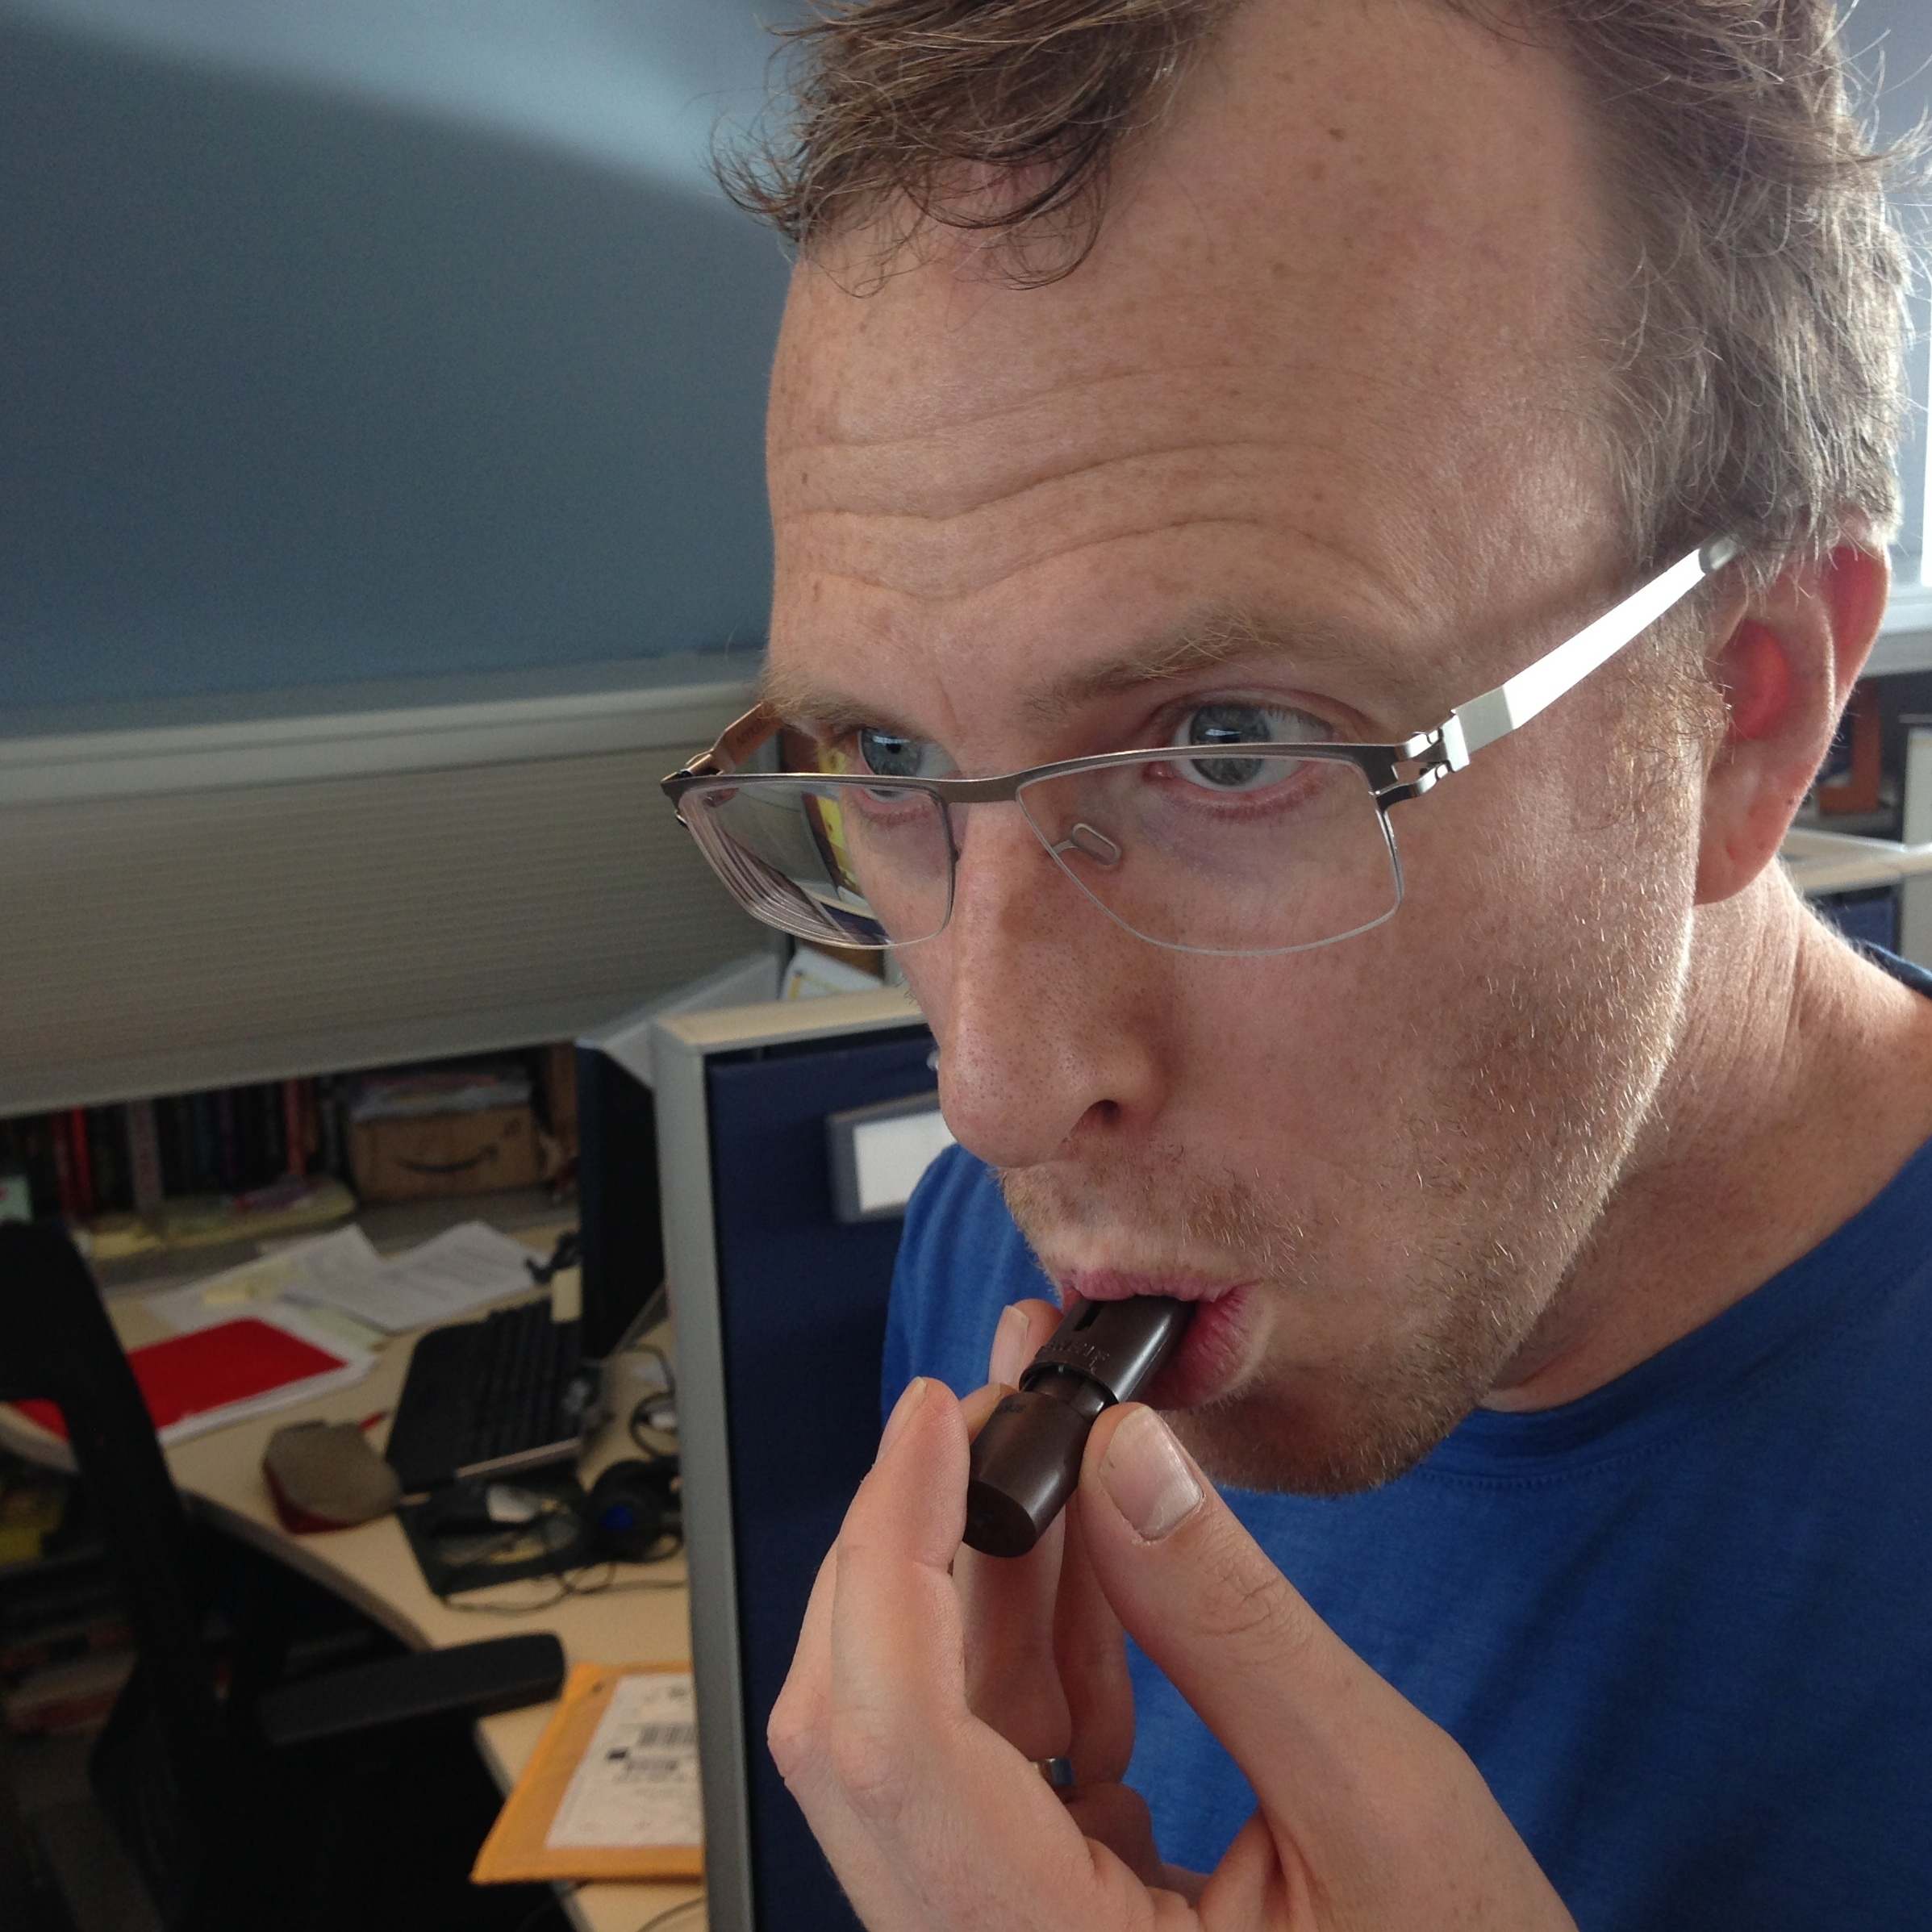 Mike: inhaling chocolate or playing a tiny flute?